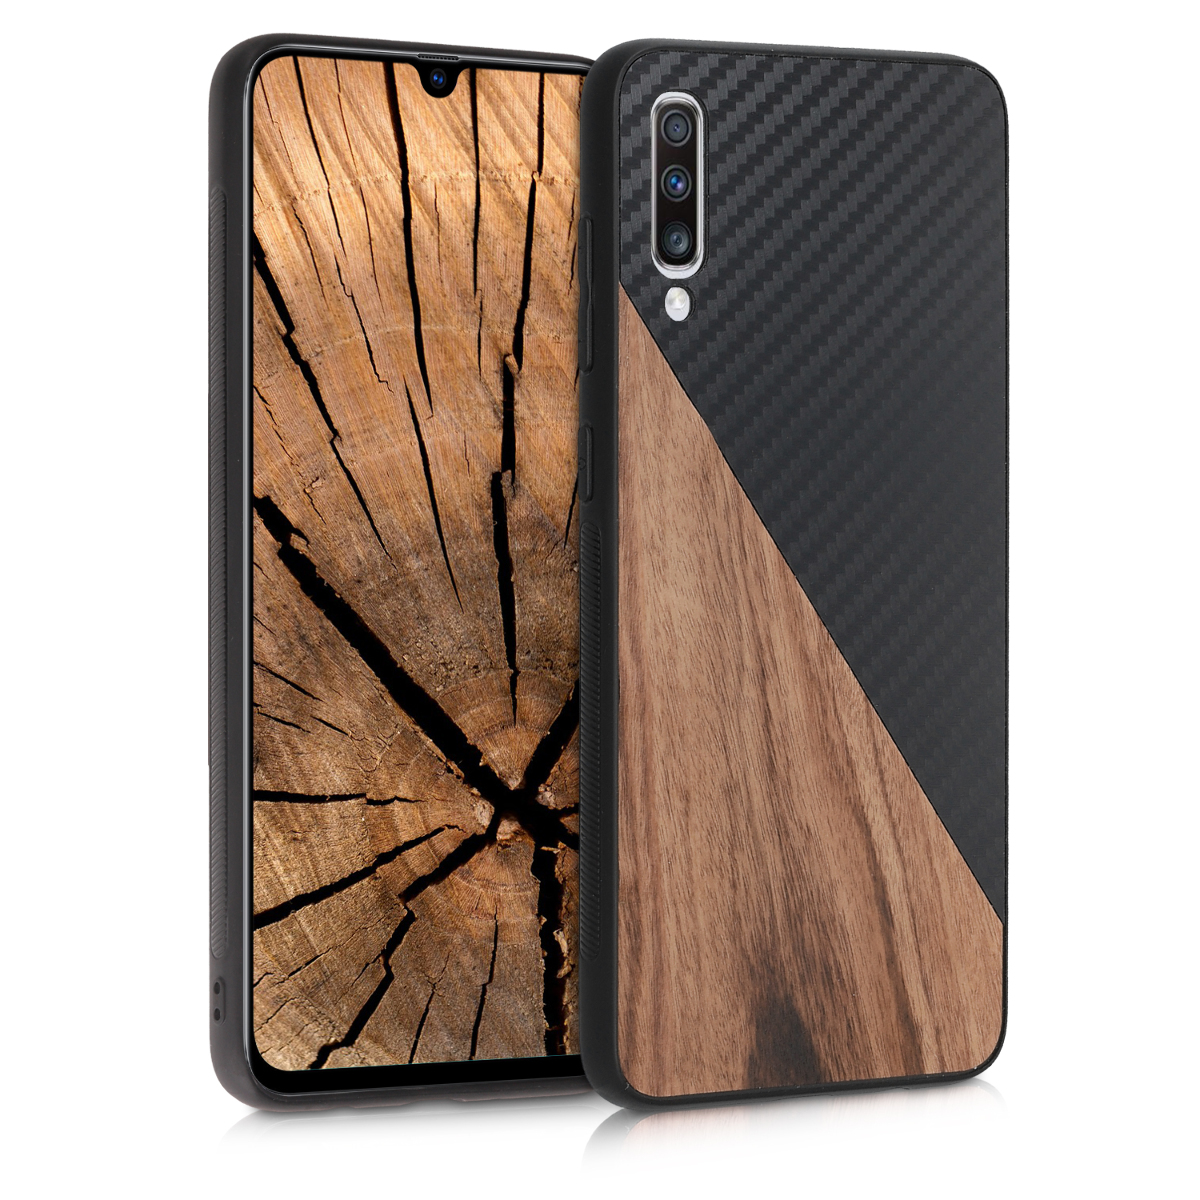 KW Σκληρή Θήκη Samsung Galaxy A70 - TPU Bumper and Wood / Carbon Fiber - Dark Brown / Black (50996.01)